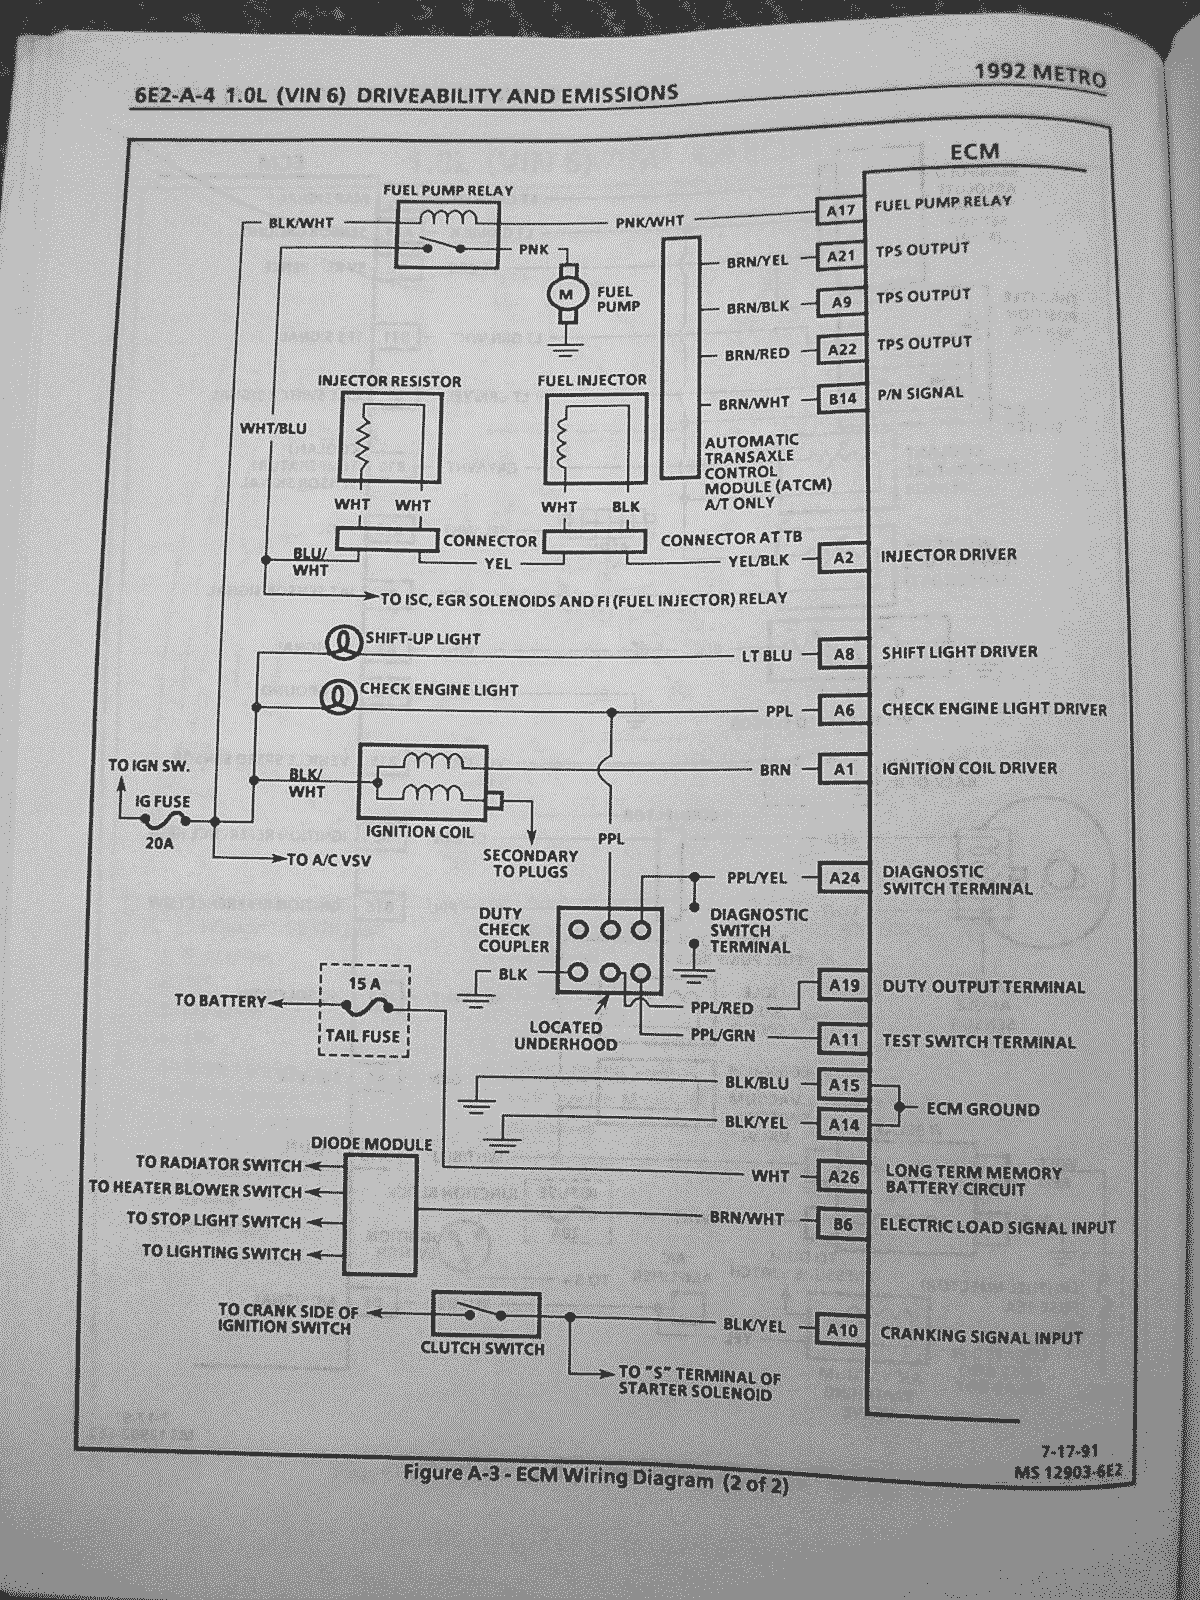 6e2 a 4 geo metro and suzuki swift wiring diagrams metroxfi com geo metro wiring diagram at bakdesigns.co